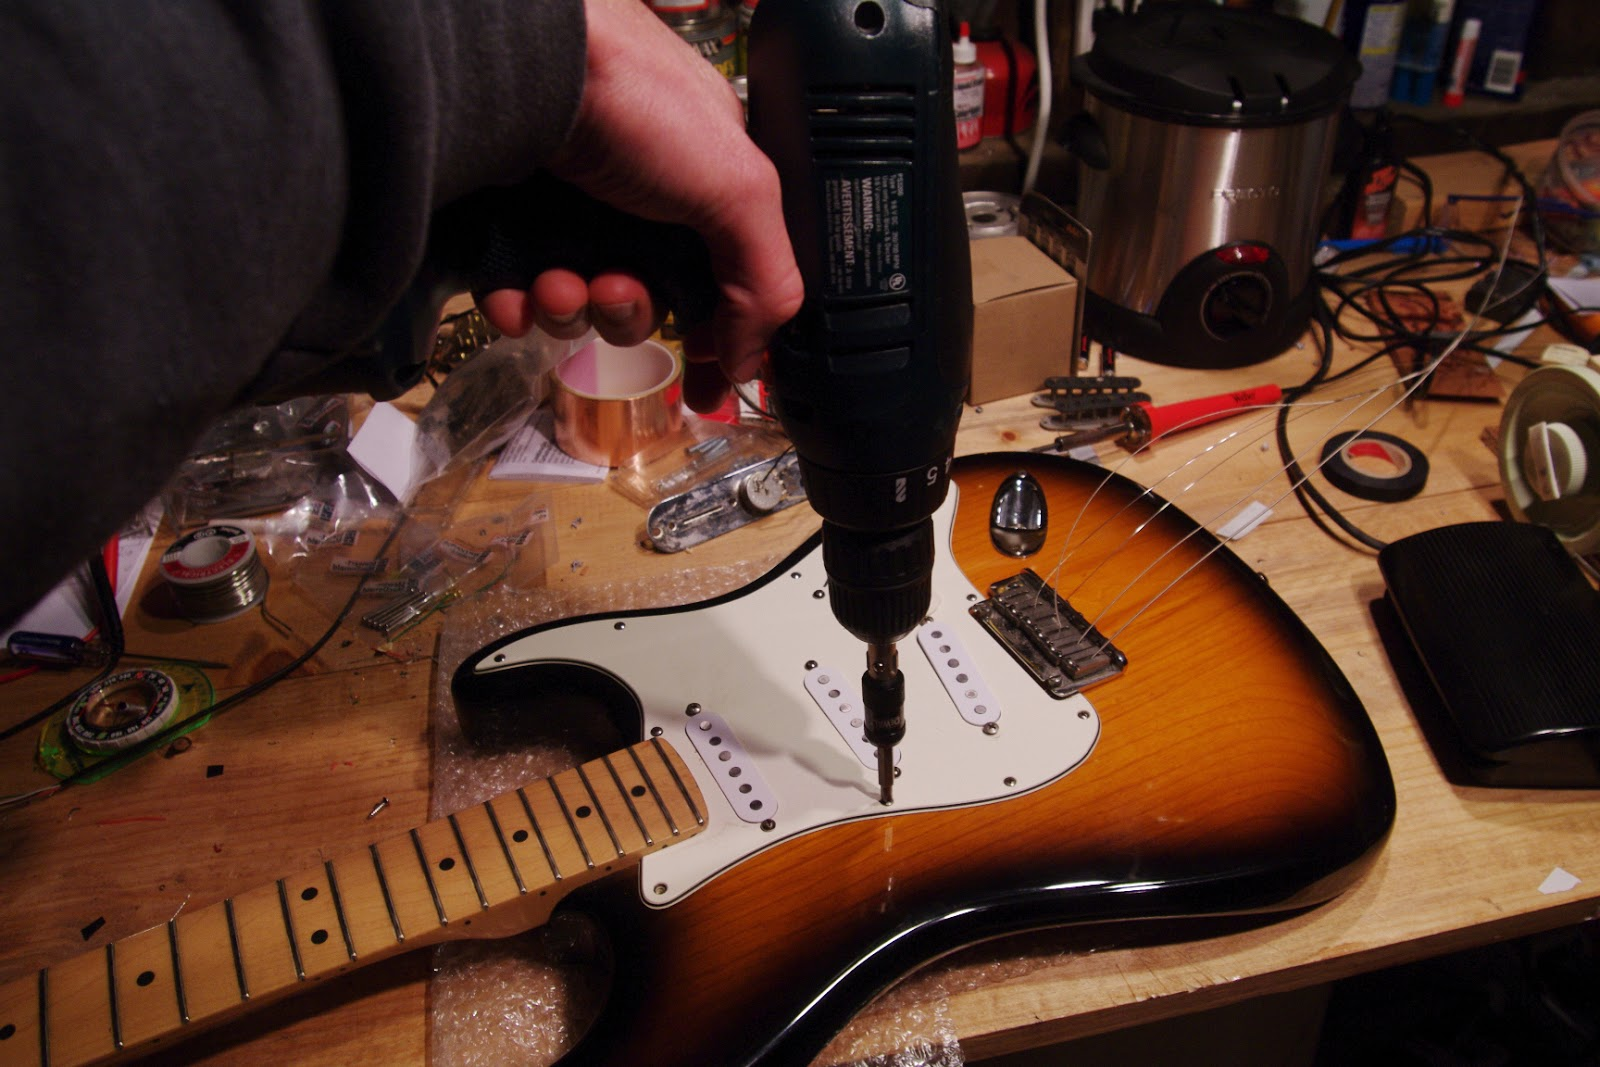 Schuyler Dean Pickups Handmade Guitars And Fat Telecaster Wiring Diagram For Many Players The Strat Has One Good Pickup In Neck Middle Is Simply There To Occasionally Get A Weird Two Parallel Sound Or